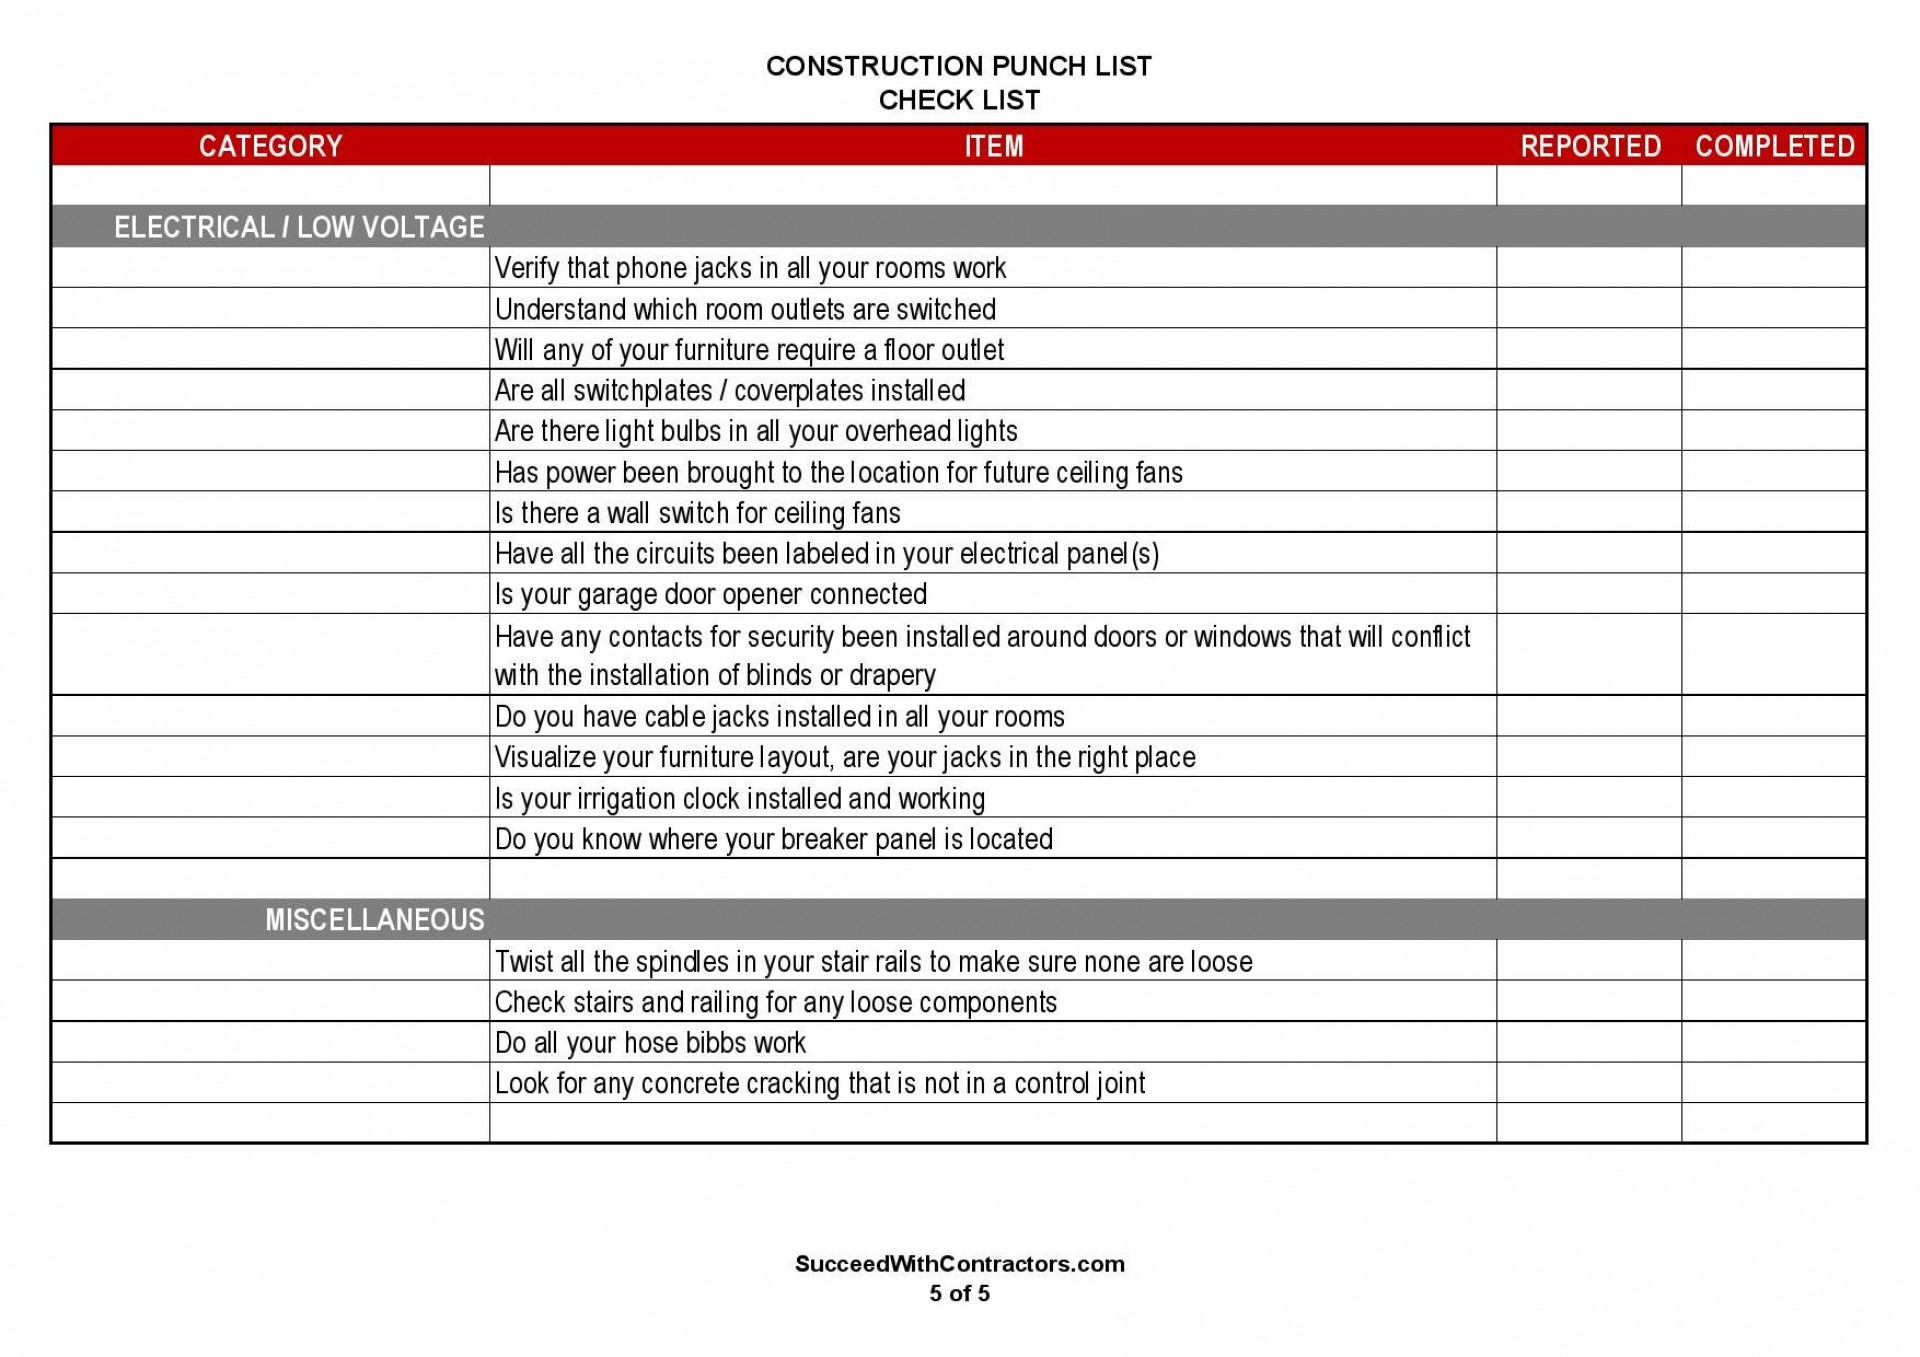 001 Singular Construction Punch List Template Word Picture 1920